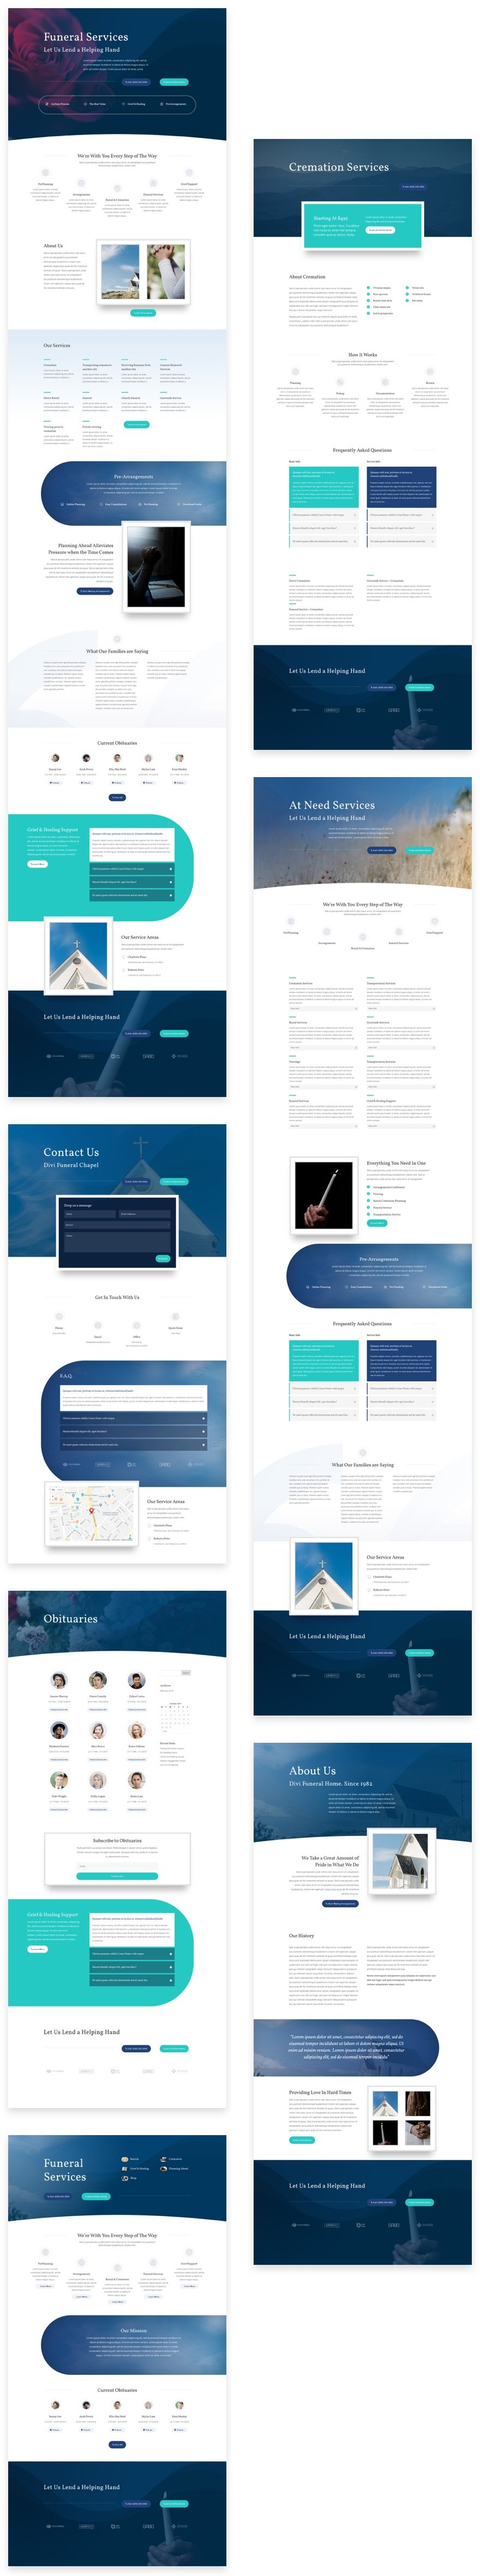 Funeral Home Layout Pack